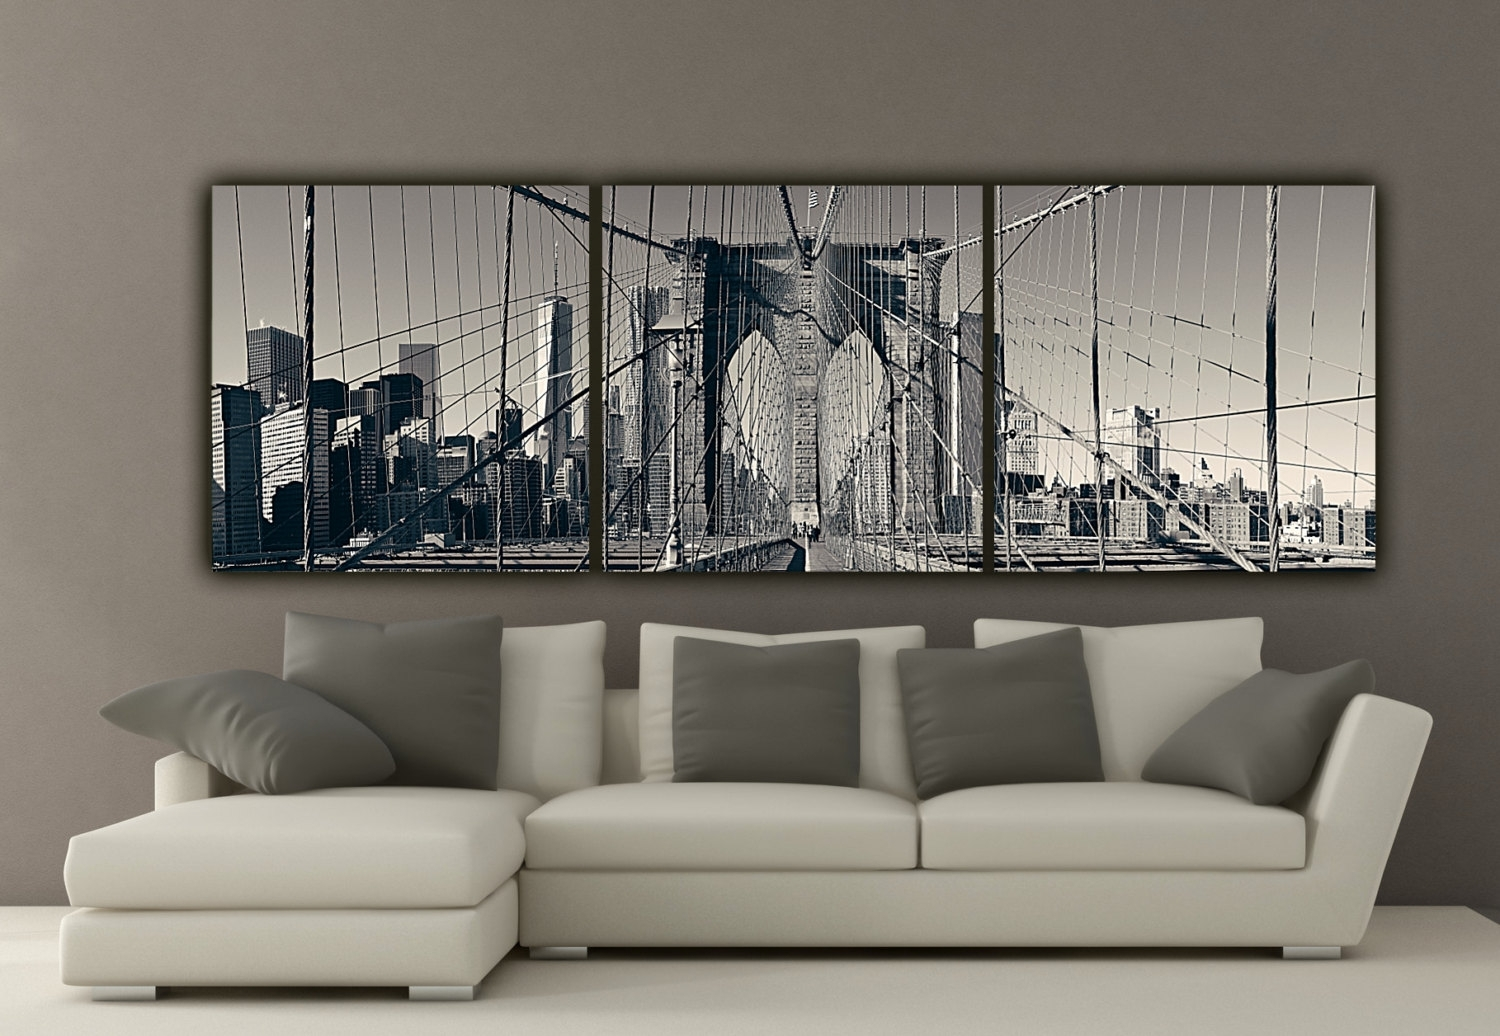 Decor: Surprising Large Canvas Wall Art For Wall Décor Ideas in Modern Large Canvas Wall Art (Image 12 of 20)